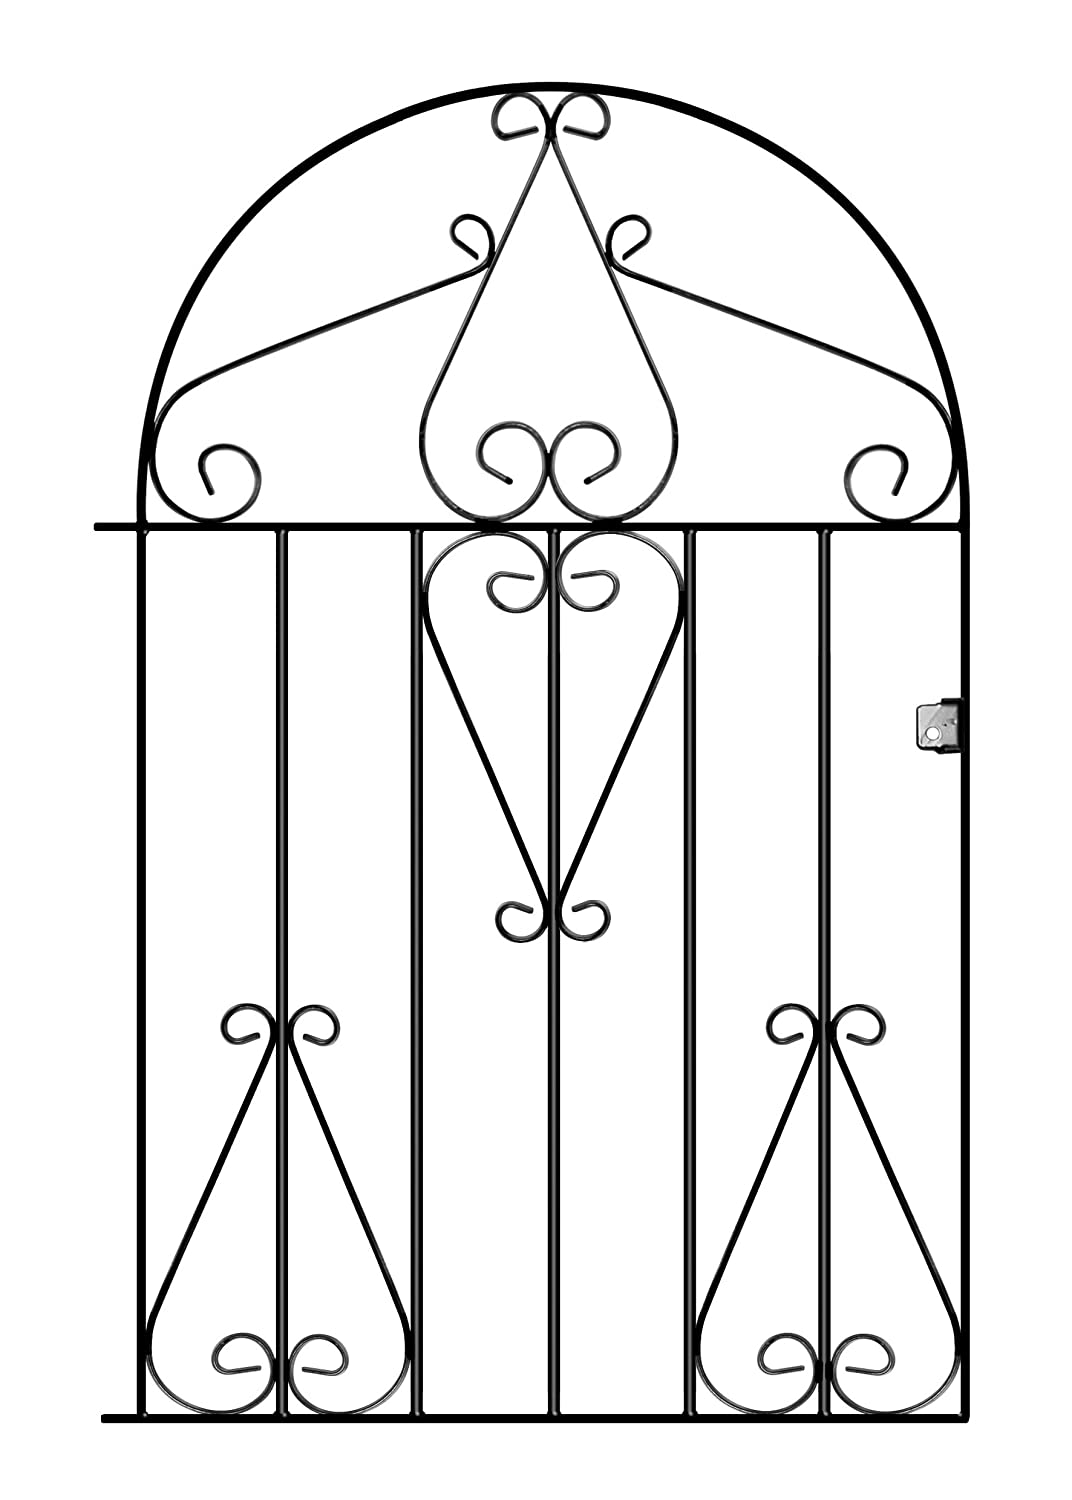 Classic Low Bow Top Scroll Garden Gates 838mm GAP X 1181mm High wrought iron style metal swing gate CLB51